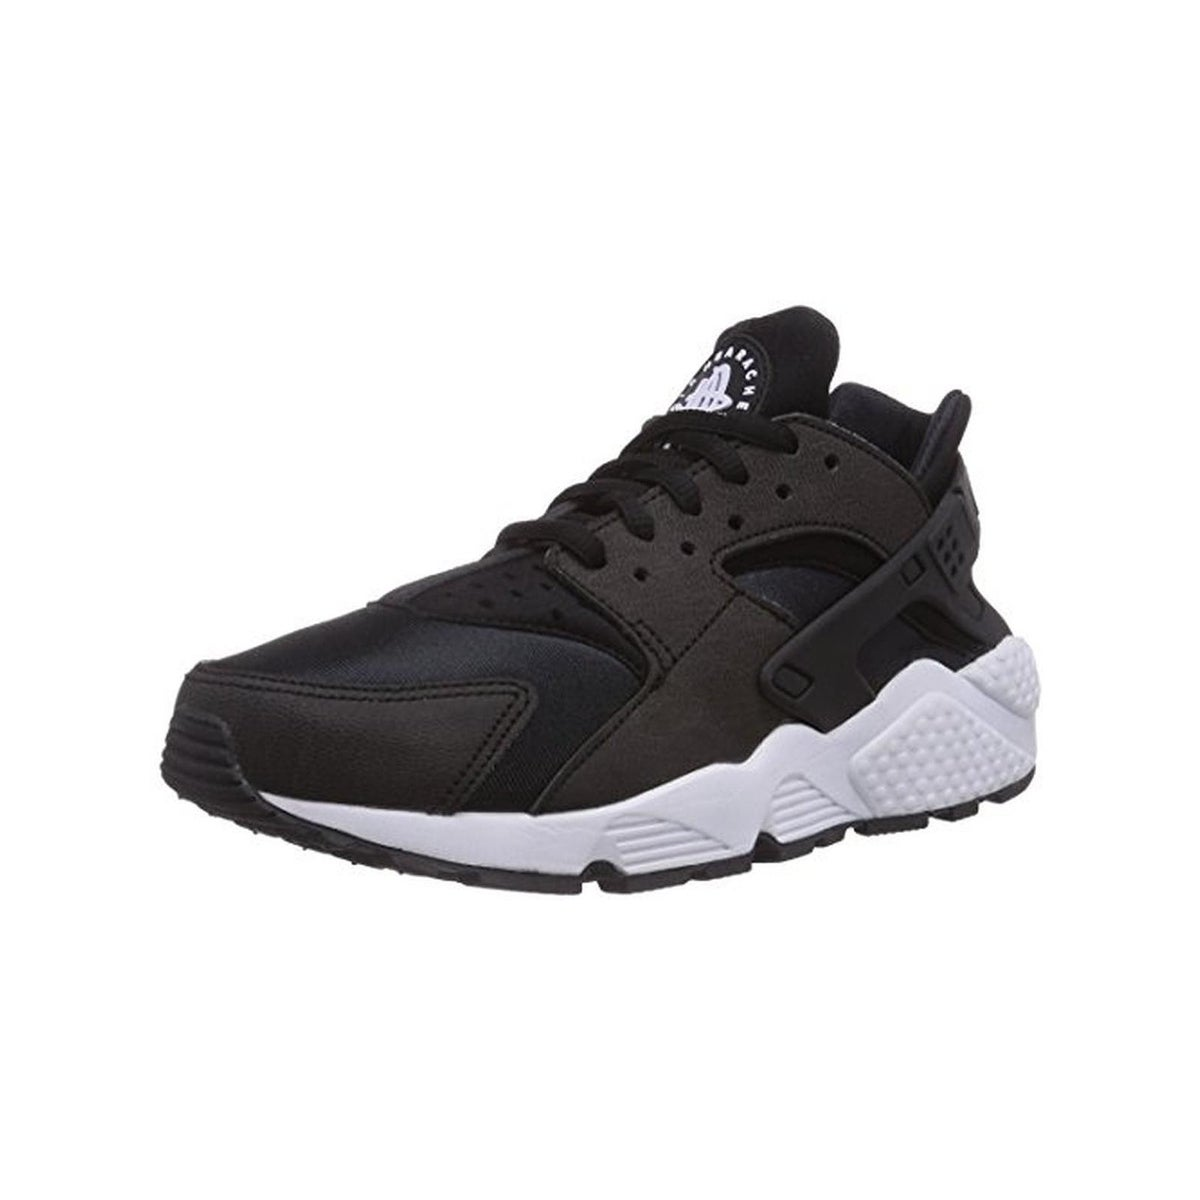 new style 230c3 3a264 Nike Women s Shoes   Find Great Shoes Deals Shopping at Overstock